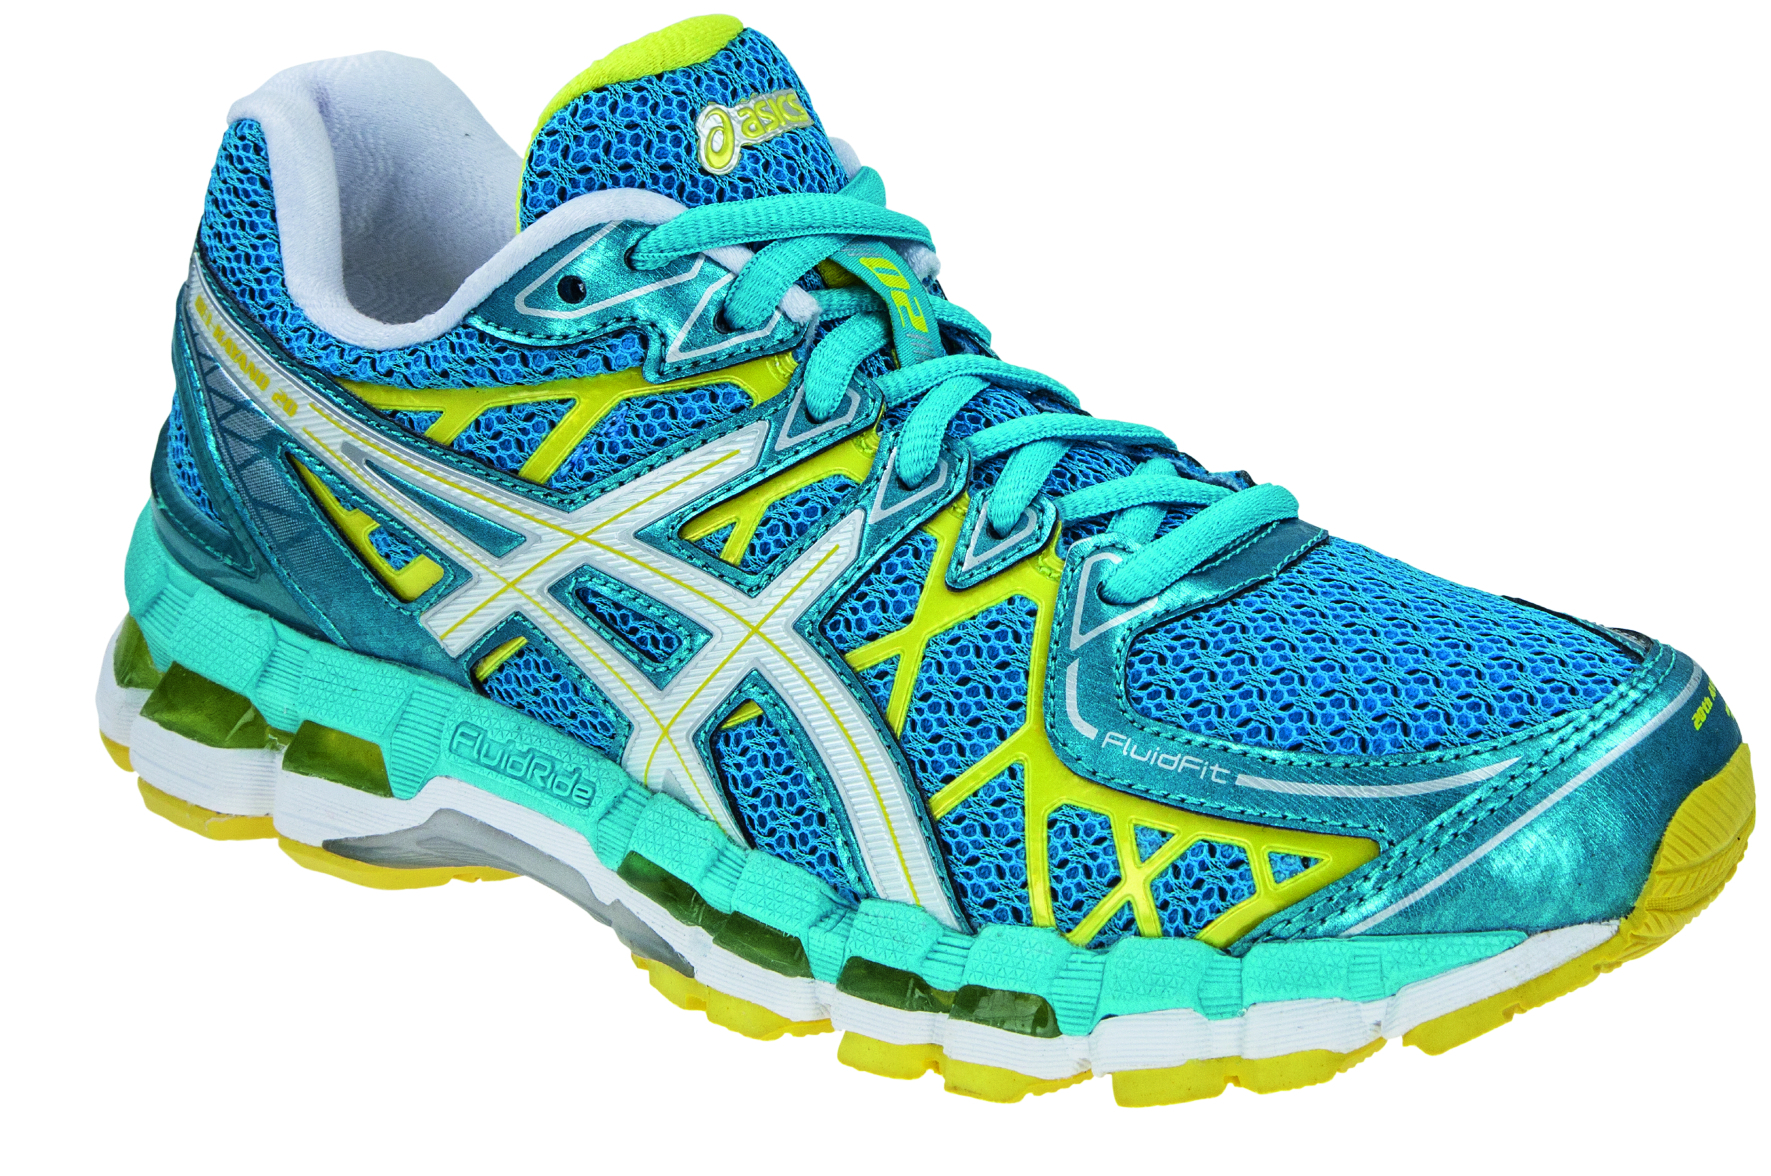 asics gel kayano 20 images